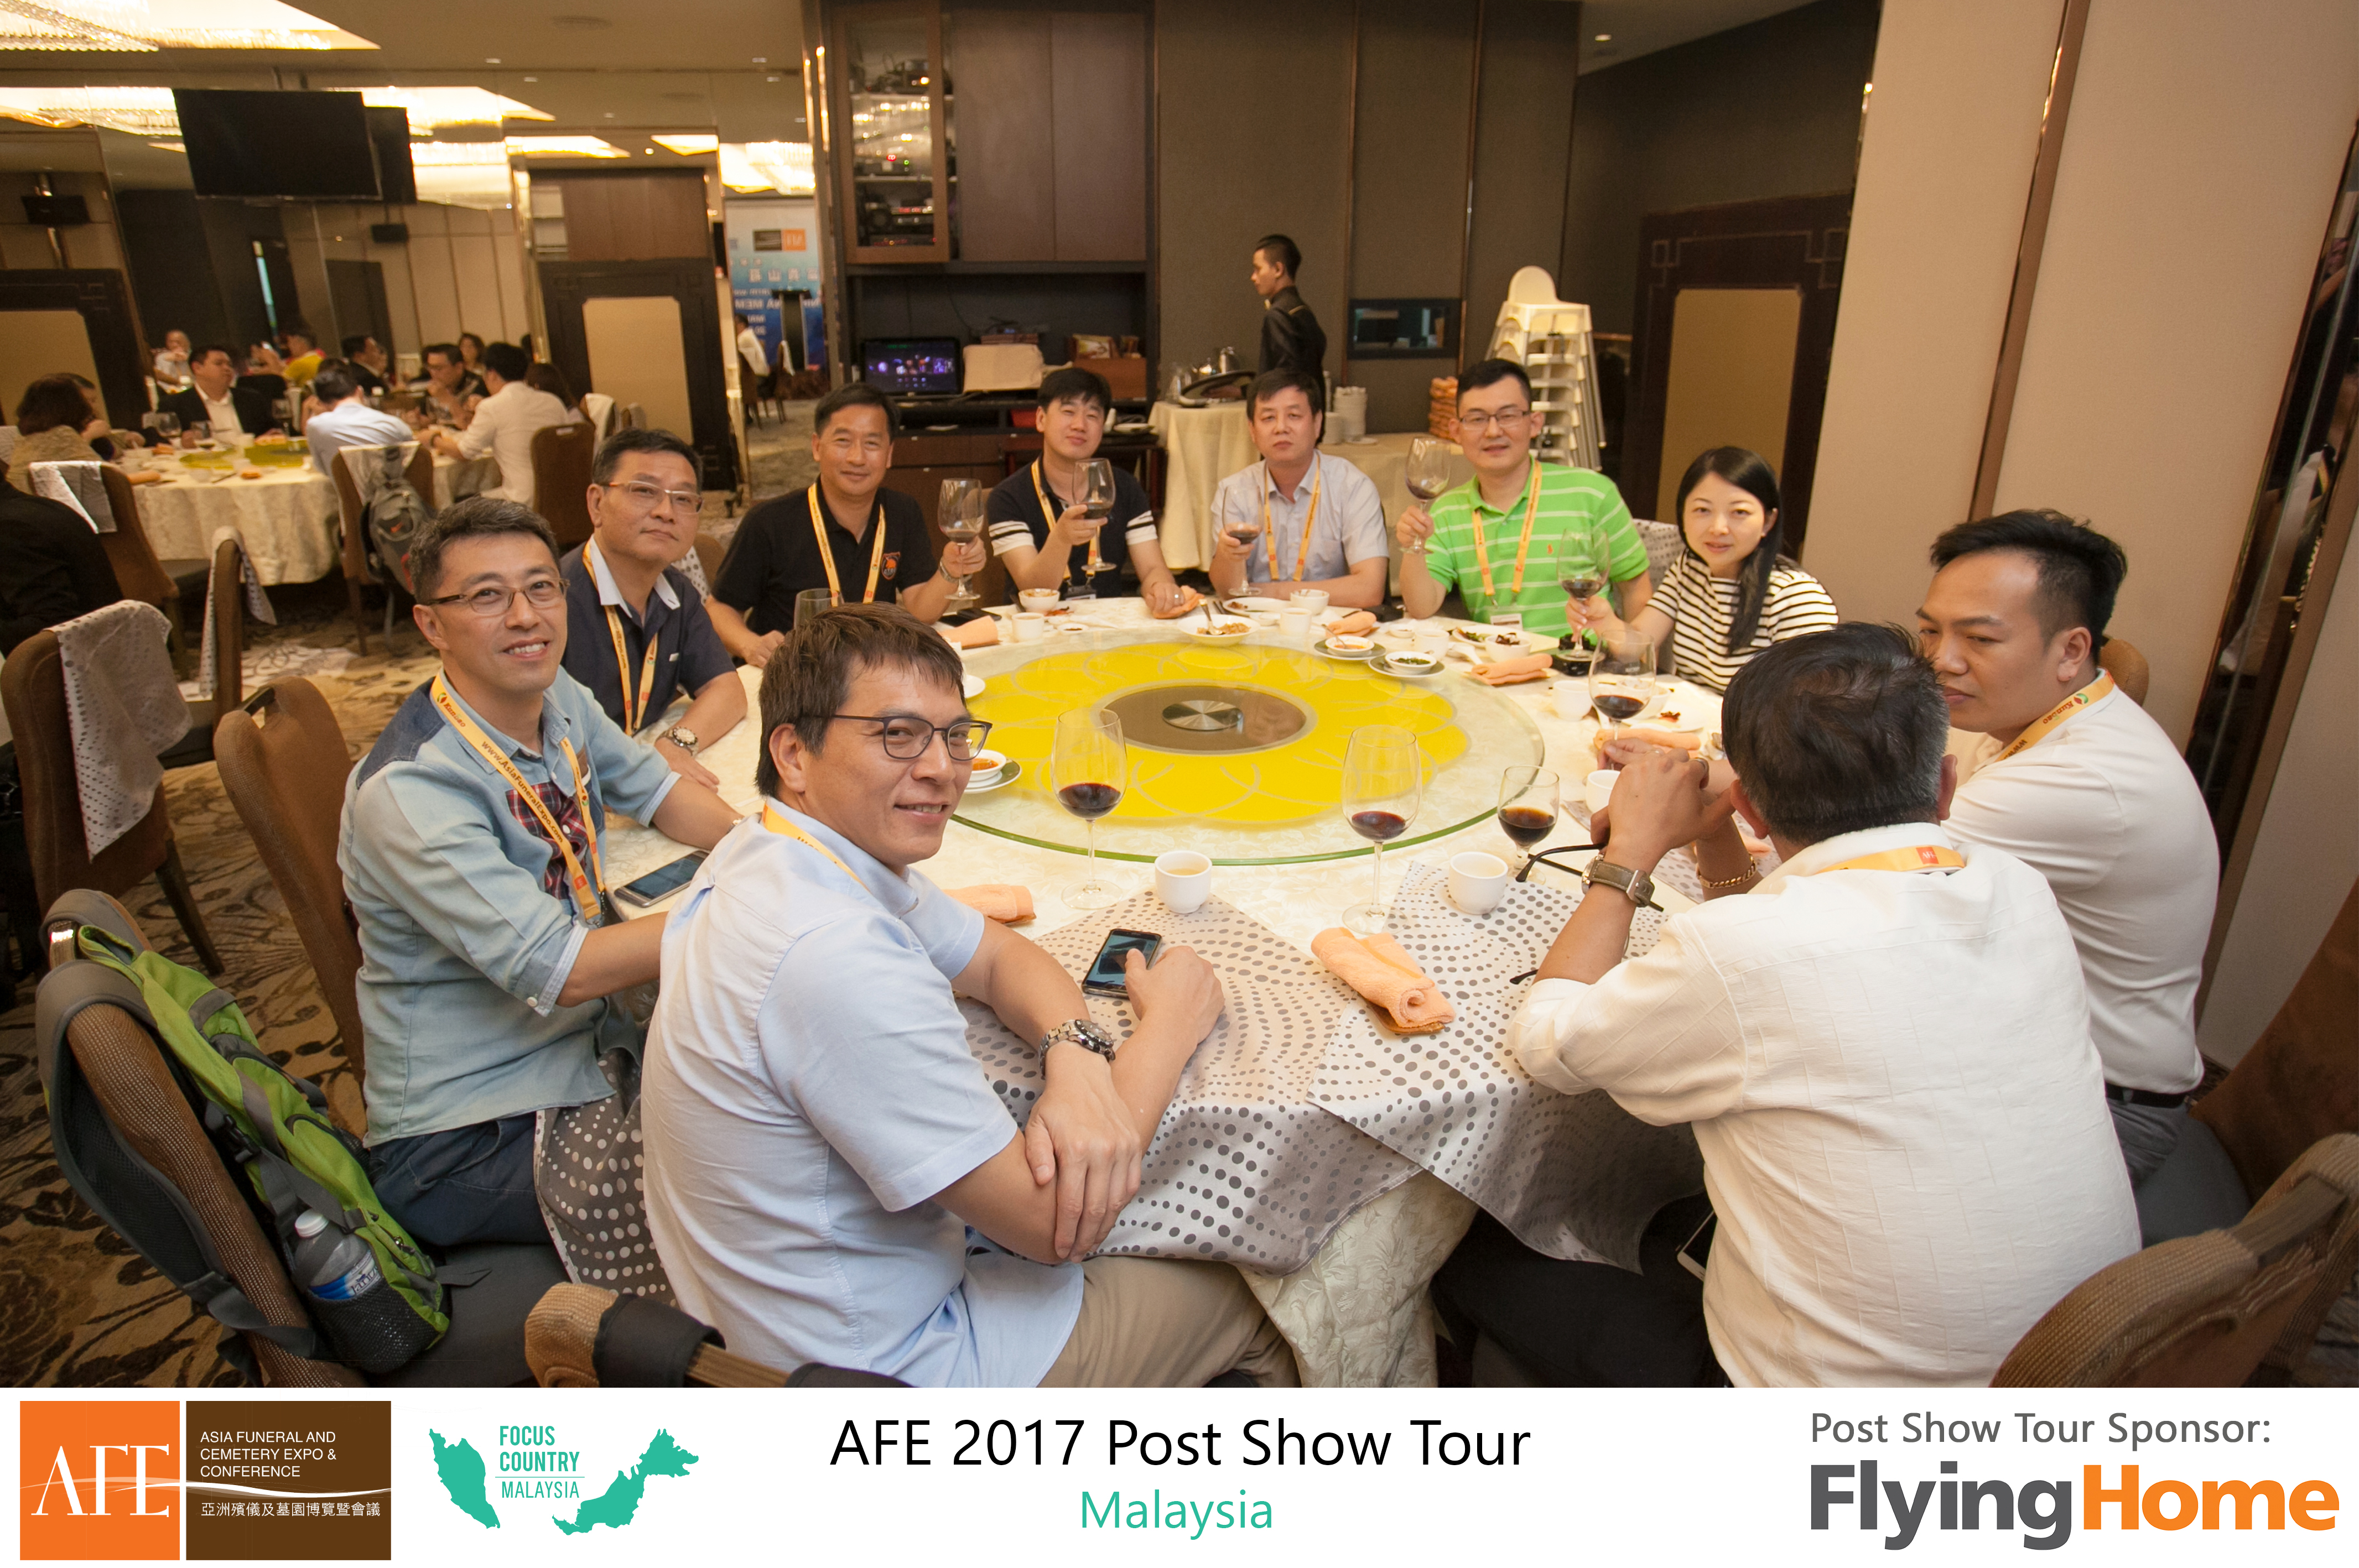 AFE Post Show Tour 2017 Day 2 - 36